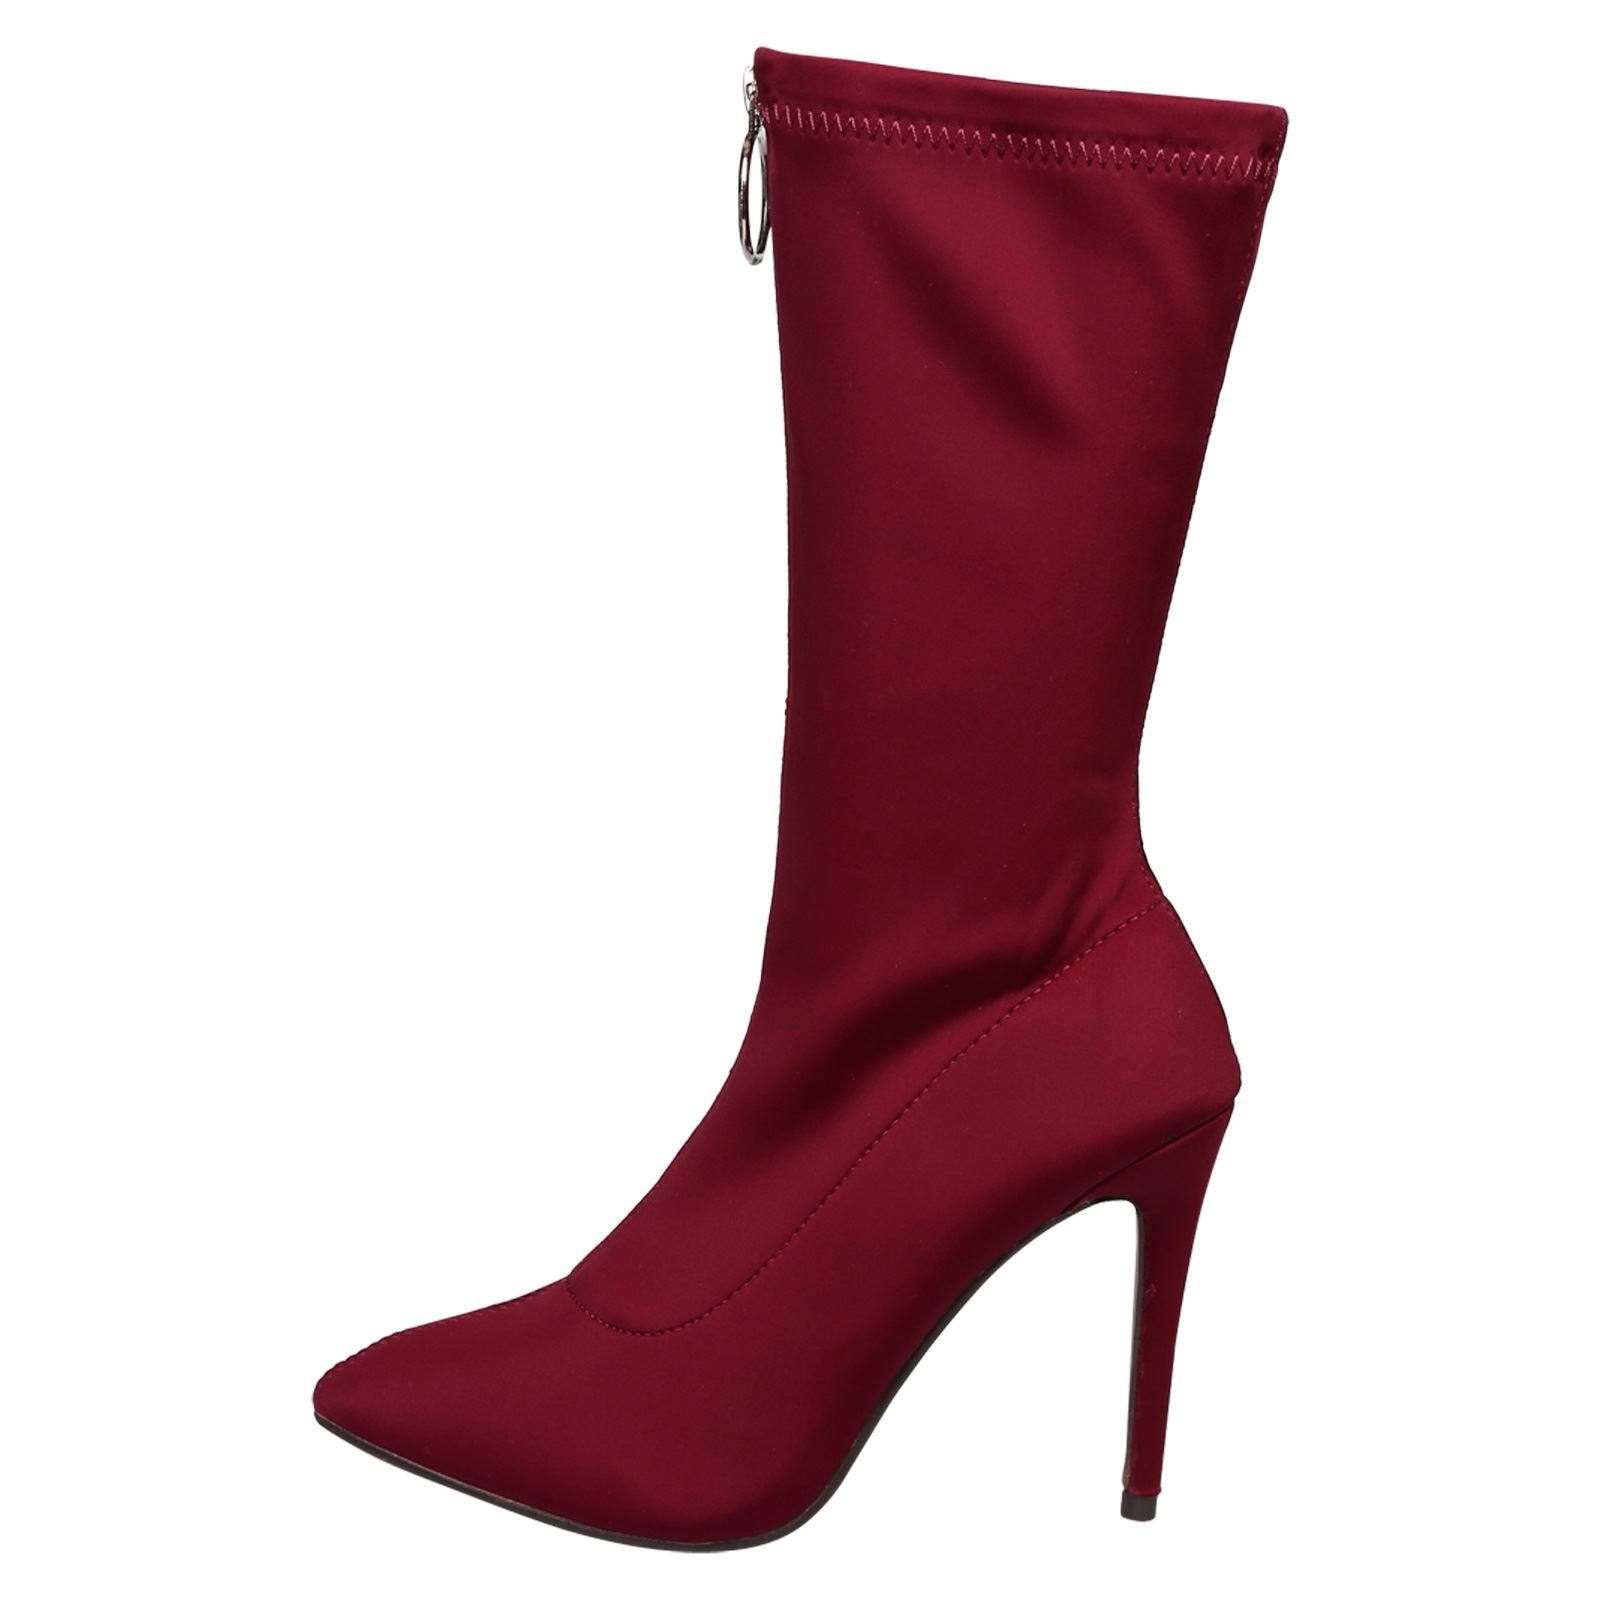 Cynthia Stilleto Heel Mid Calf Boots in Red - Feet First Fashion